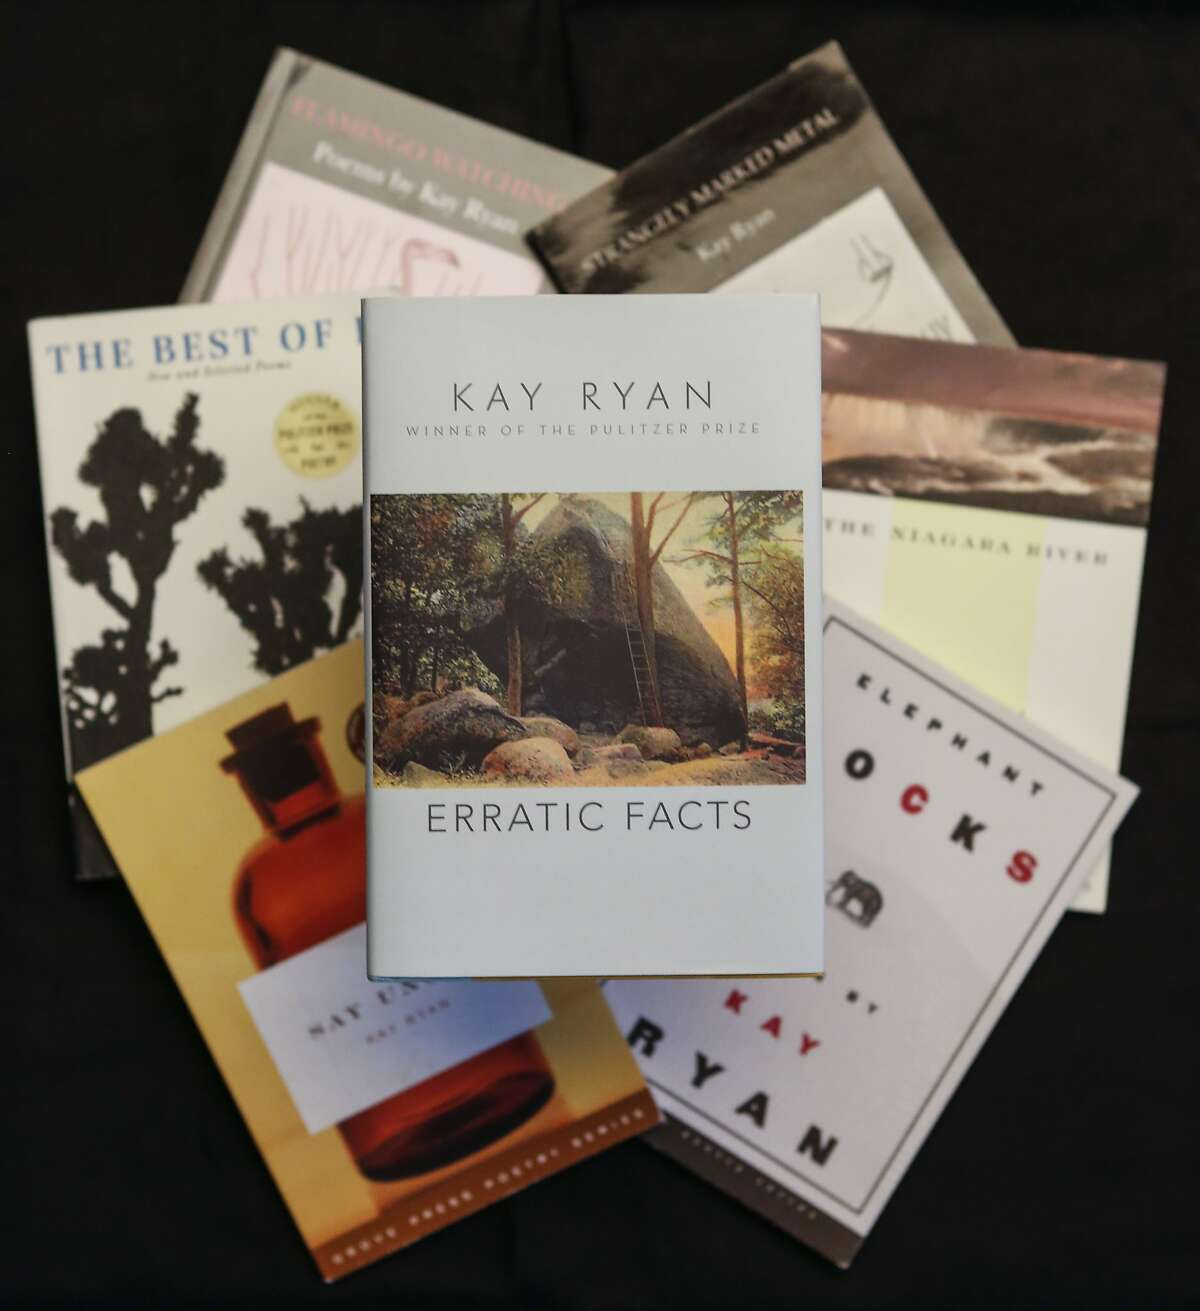 """Books by Kay Ryan including her newest title, """"Erratic Facts,"""" are seen on Tuesday, Oct. 13, 2015 in San Francisco, Calif."""